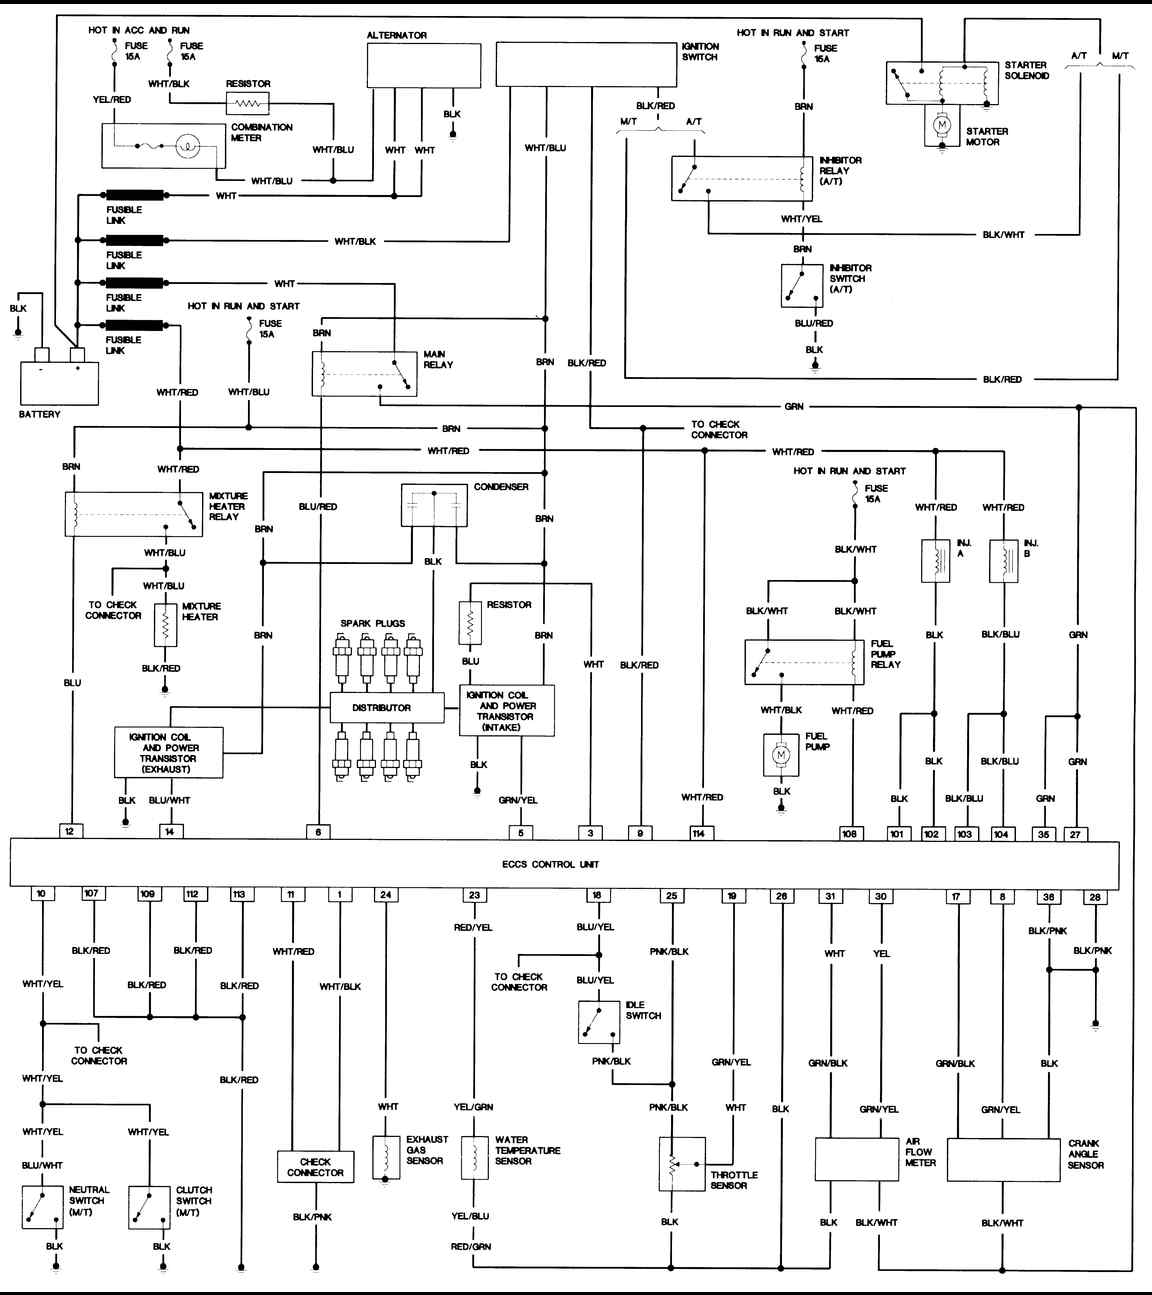 I Am Trying To Get The Electrical Diagram For A 1986 D 21